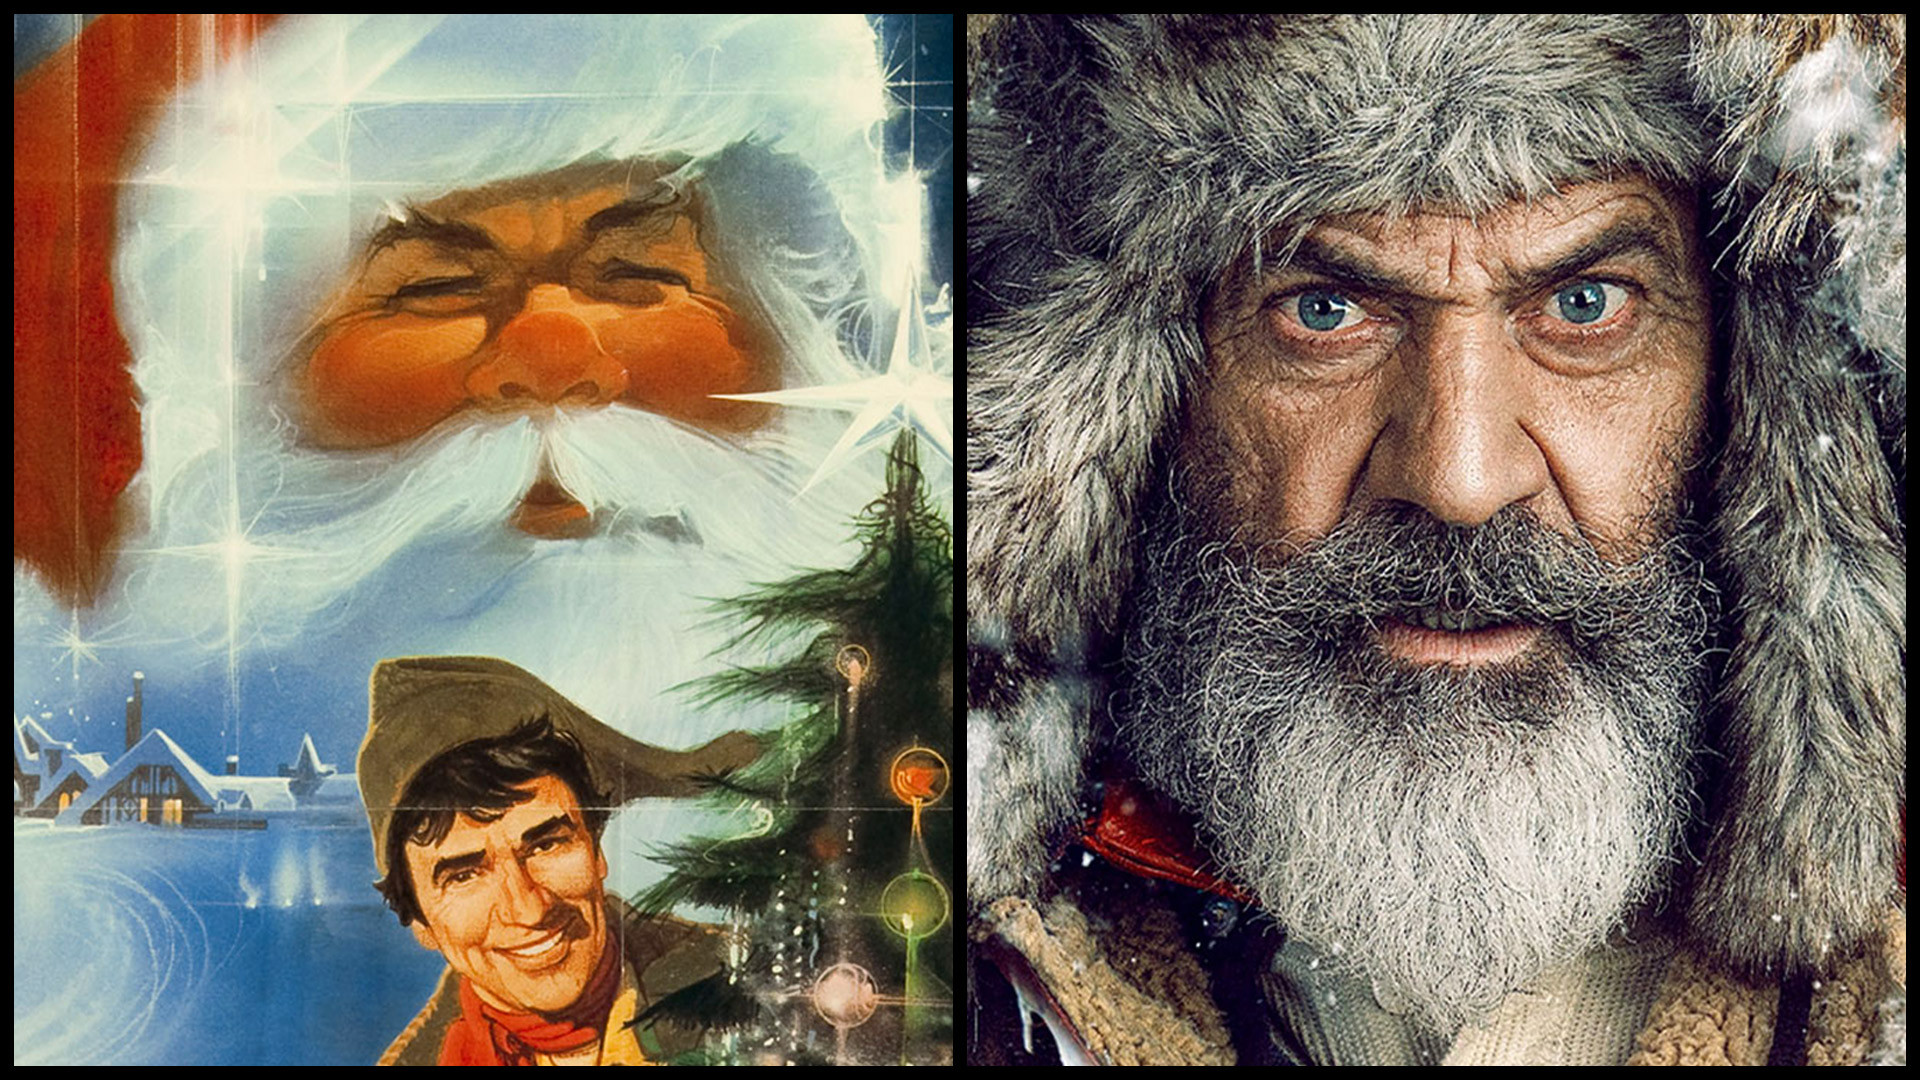 Movie Time! Duel of the Santas: Santa Claus: The Movie (1985) and Fatman (2020)